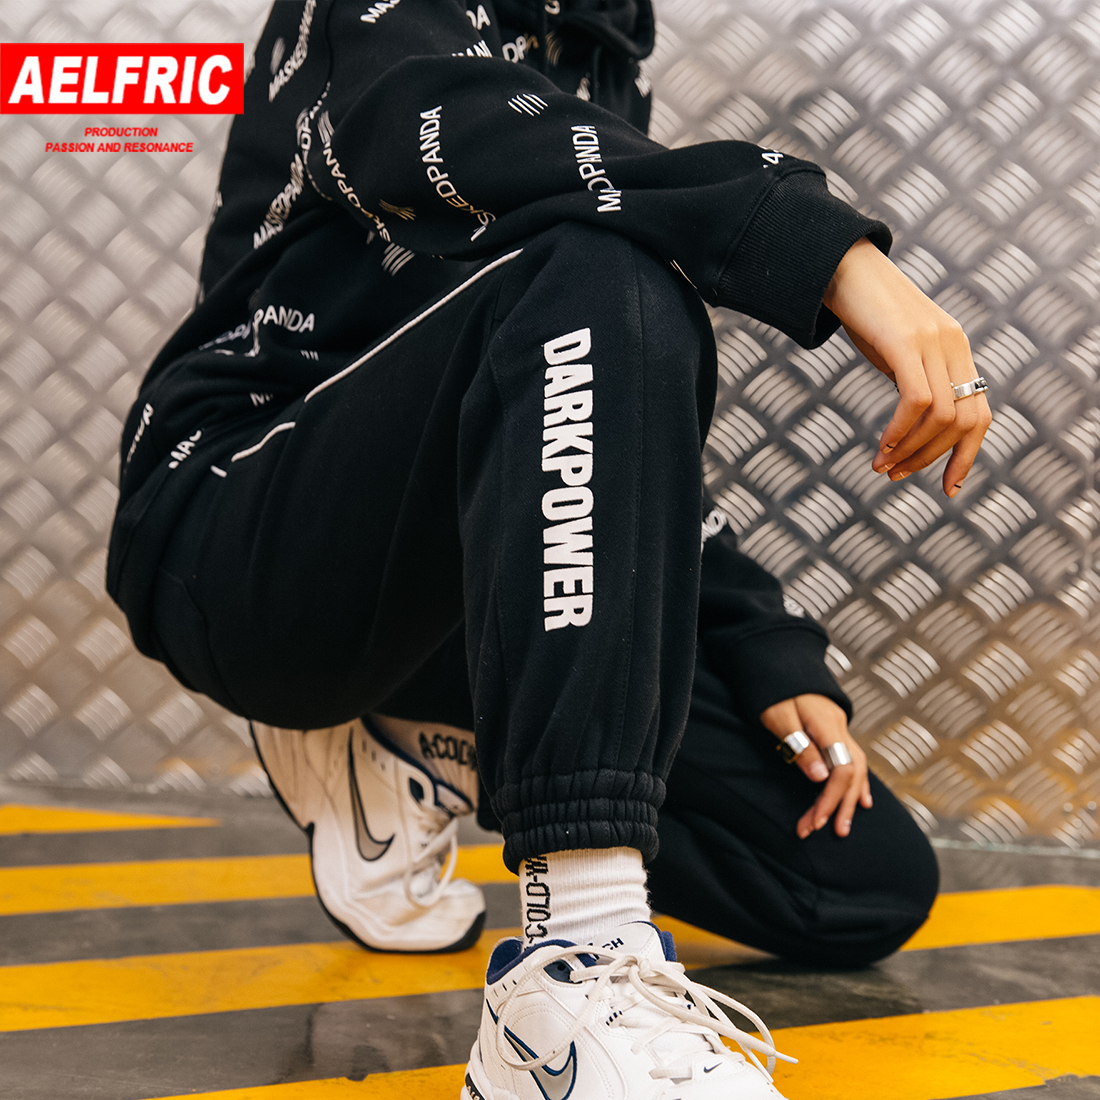 Honest Aelfric New Winter Fashion Pants Women Clothing Side Track Letter Printed Trousers Casual Cotton Fleece Elastic Swear Pants Mp04